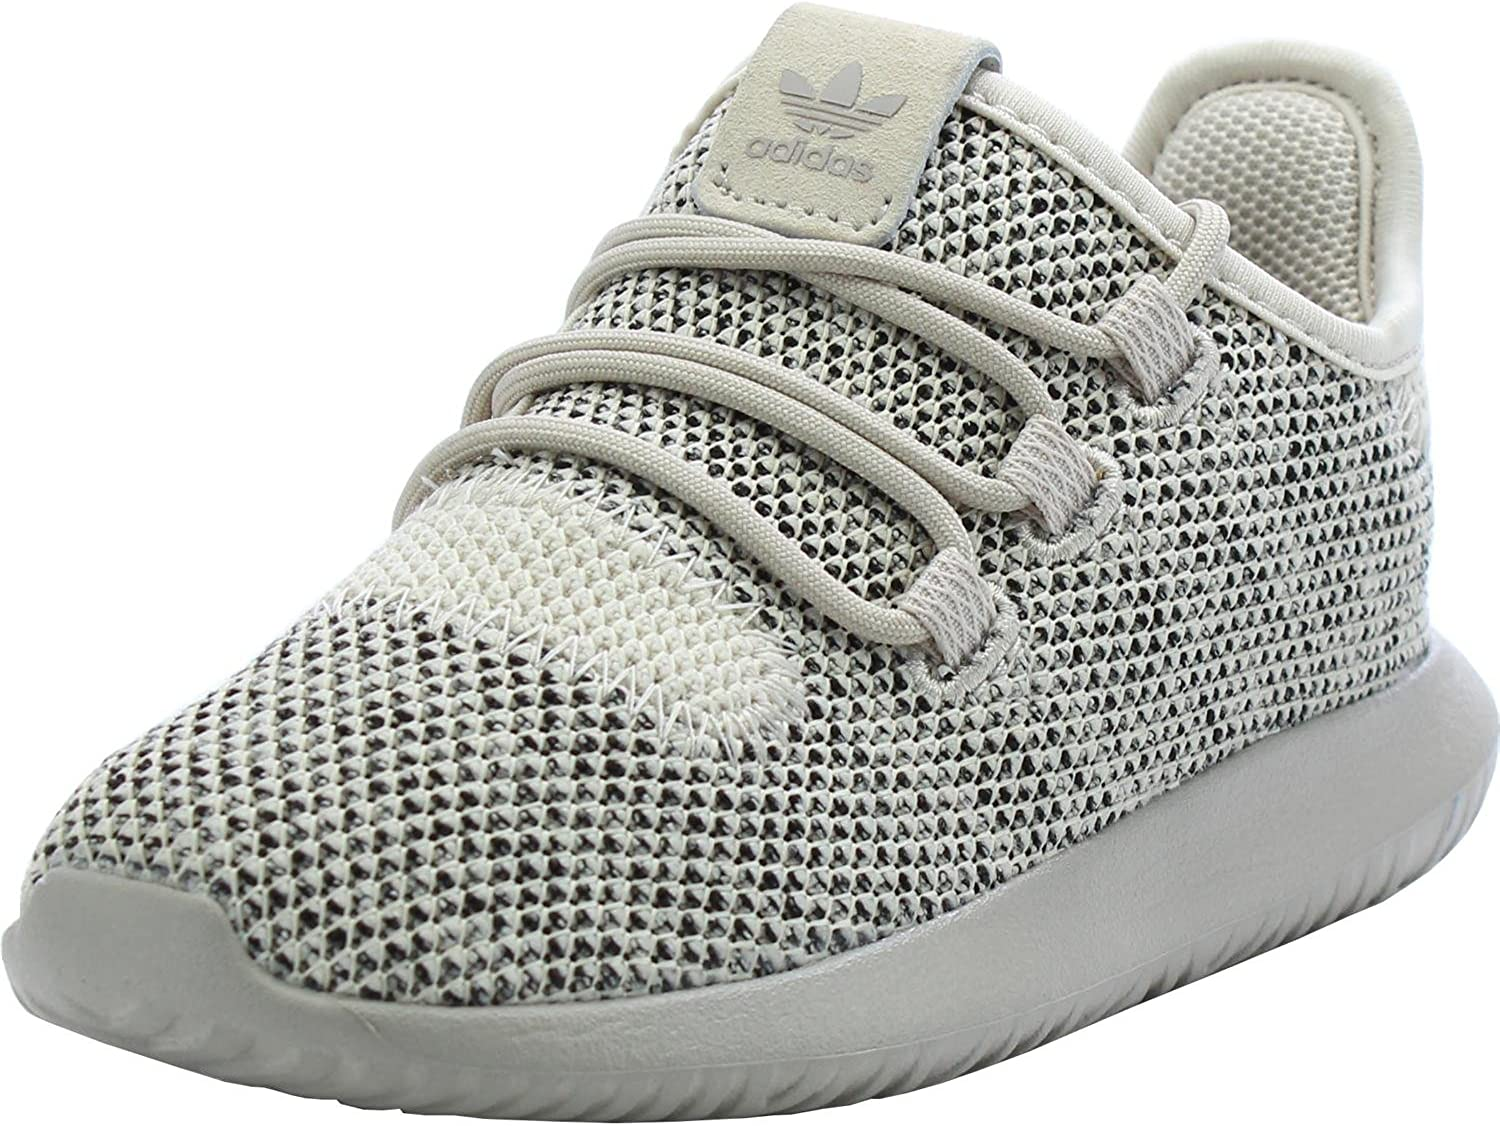 7.5 infant trainers